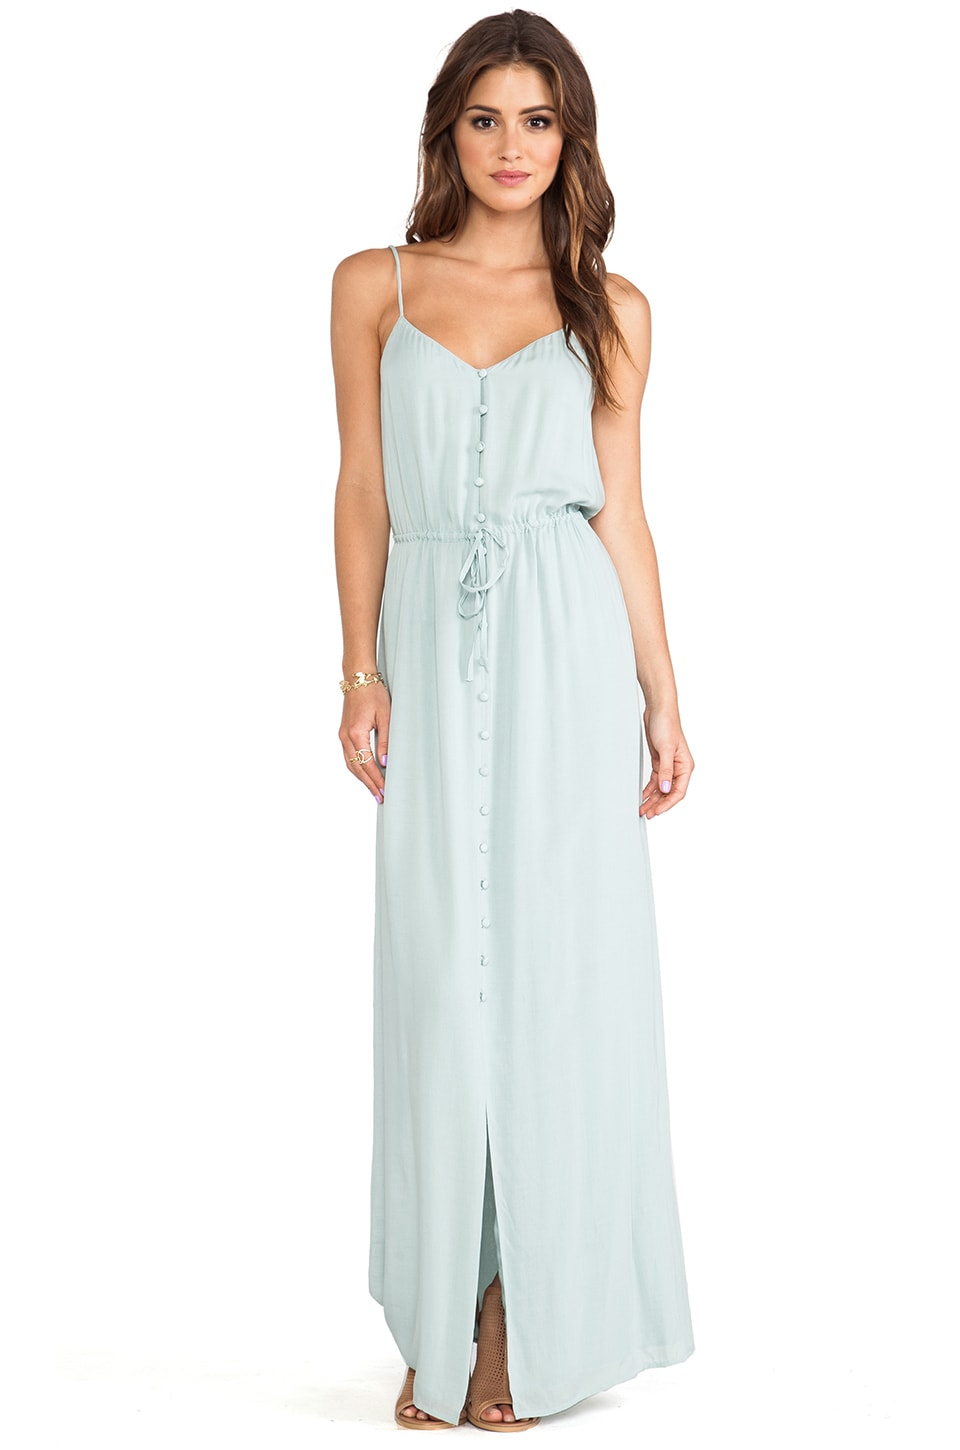 PAIGE Nina Dress in Ocean Mist